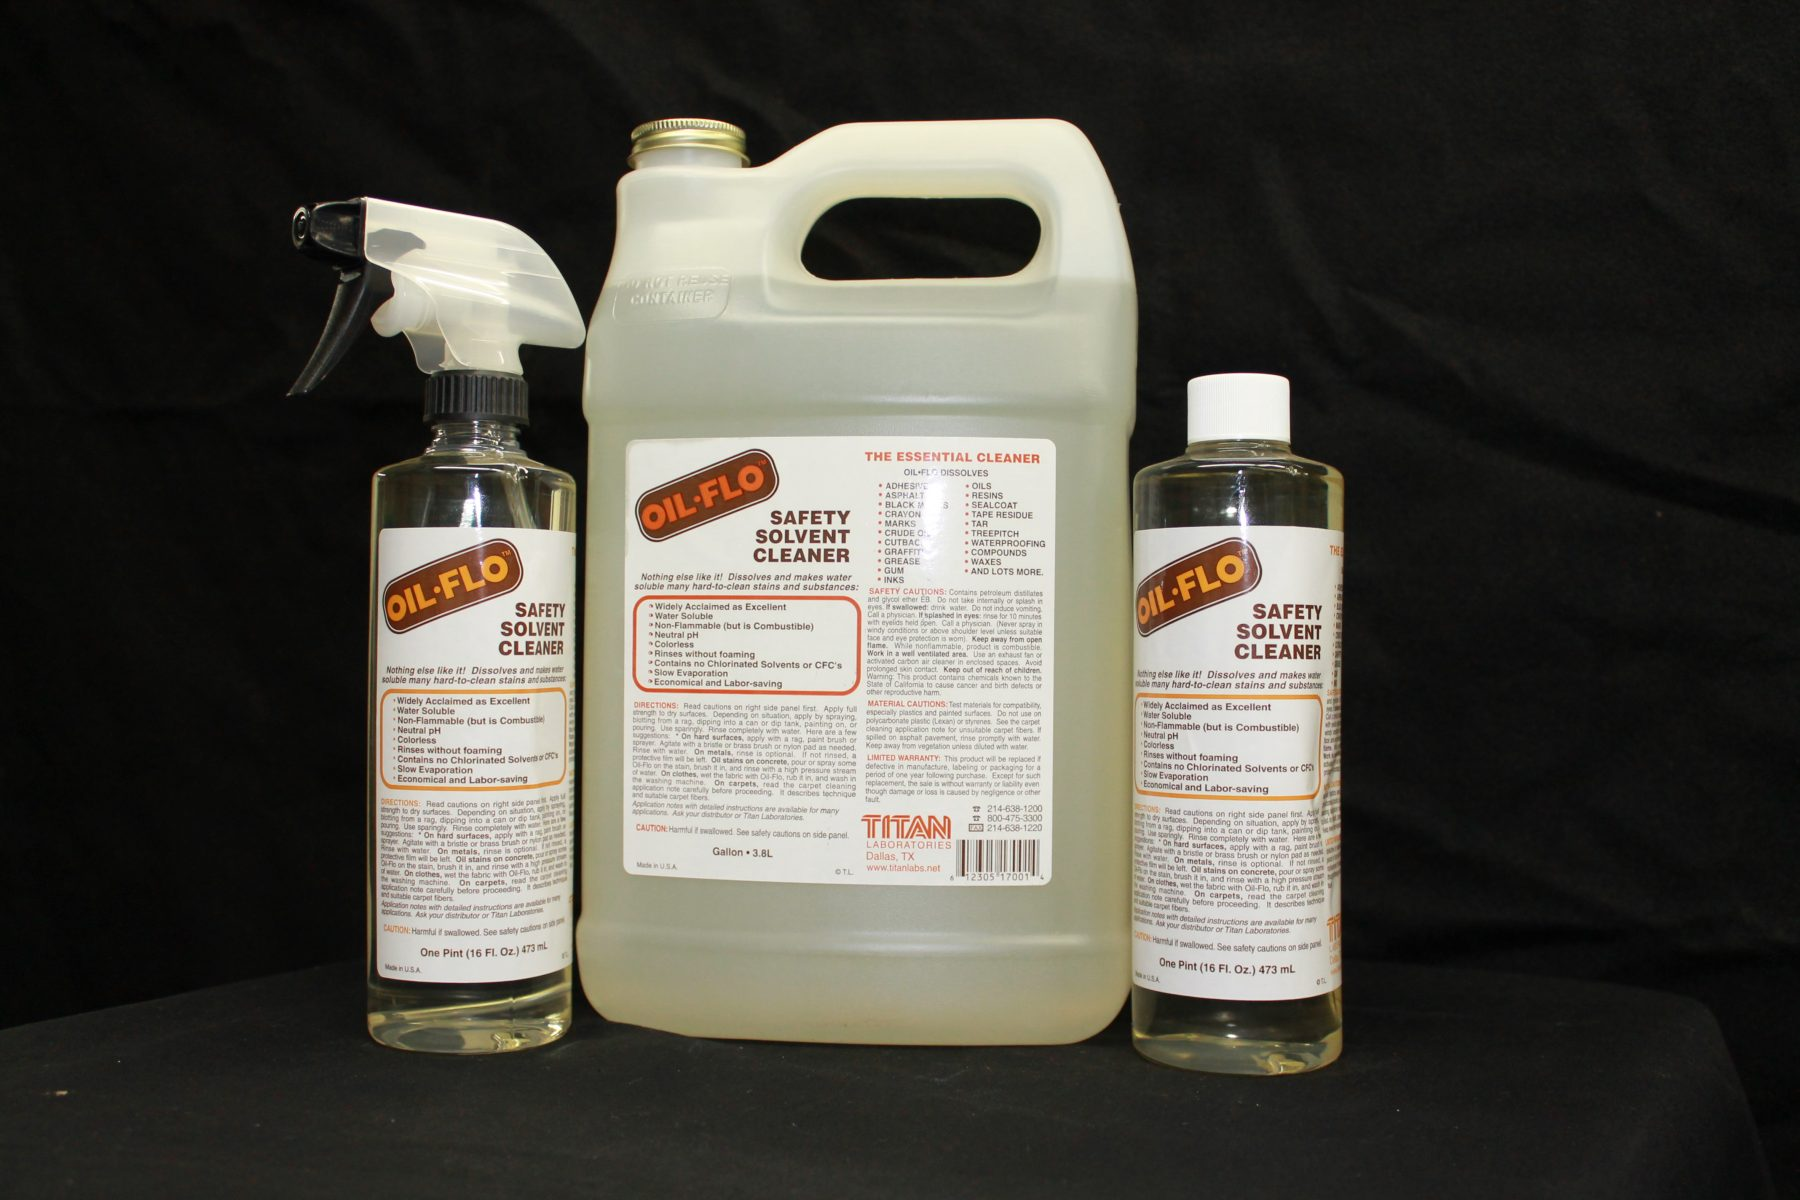 Oil Flo Cleaner And Degreaser